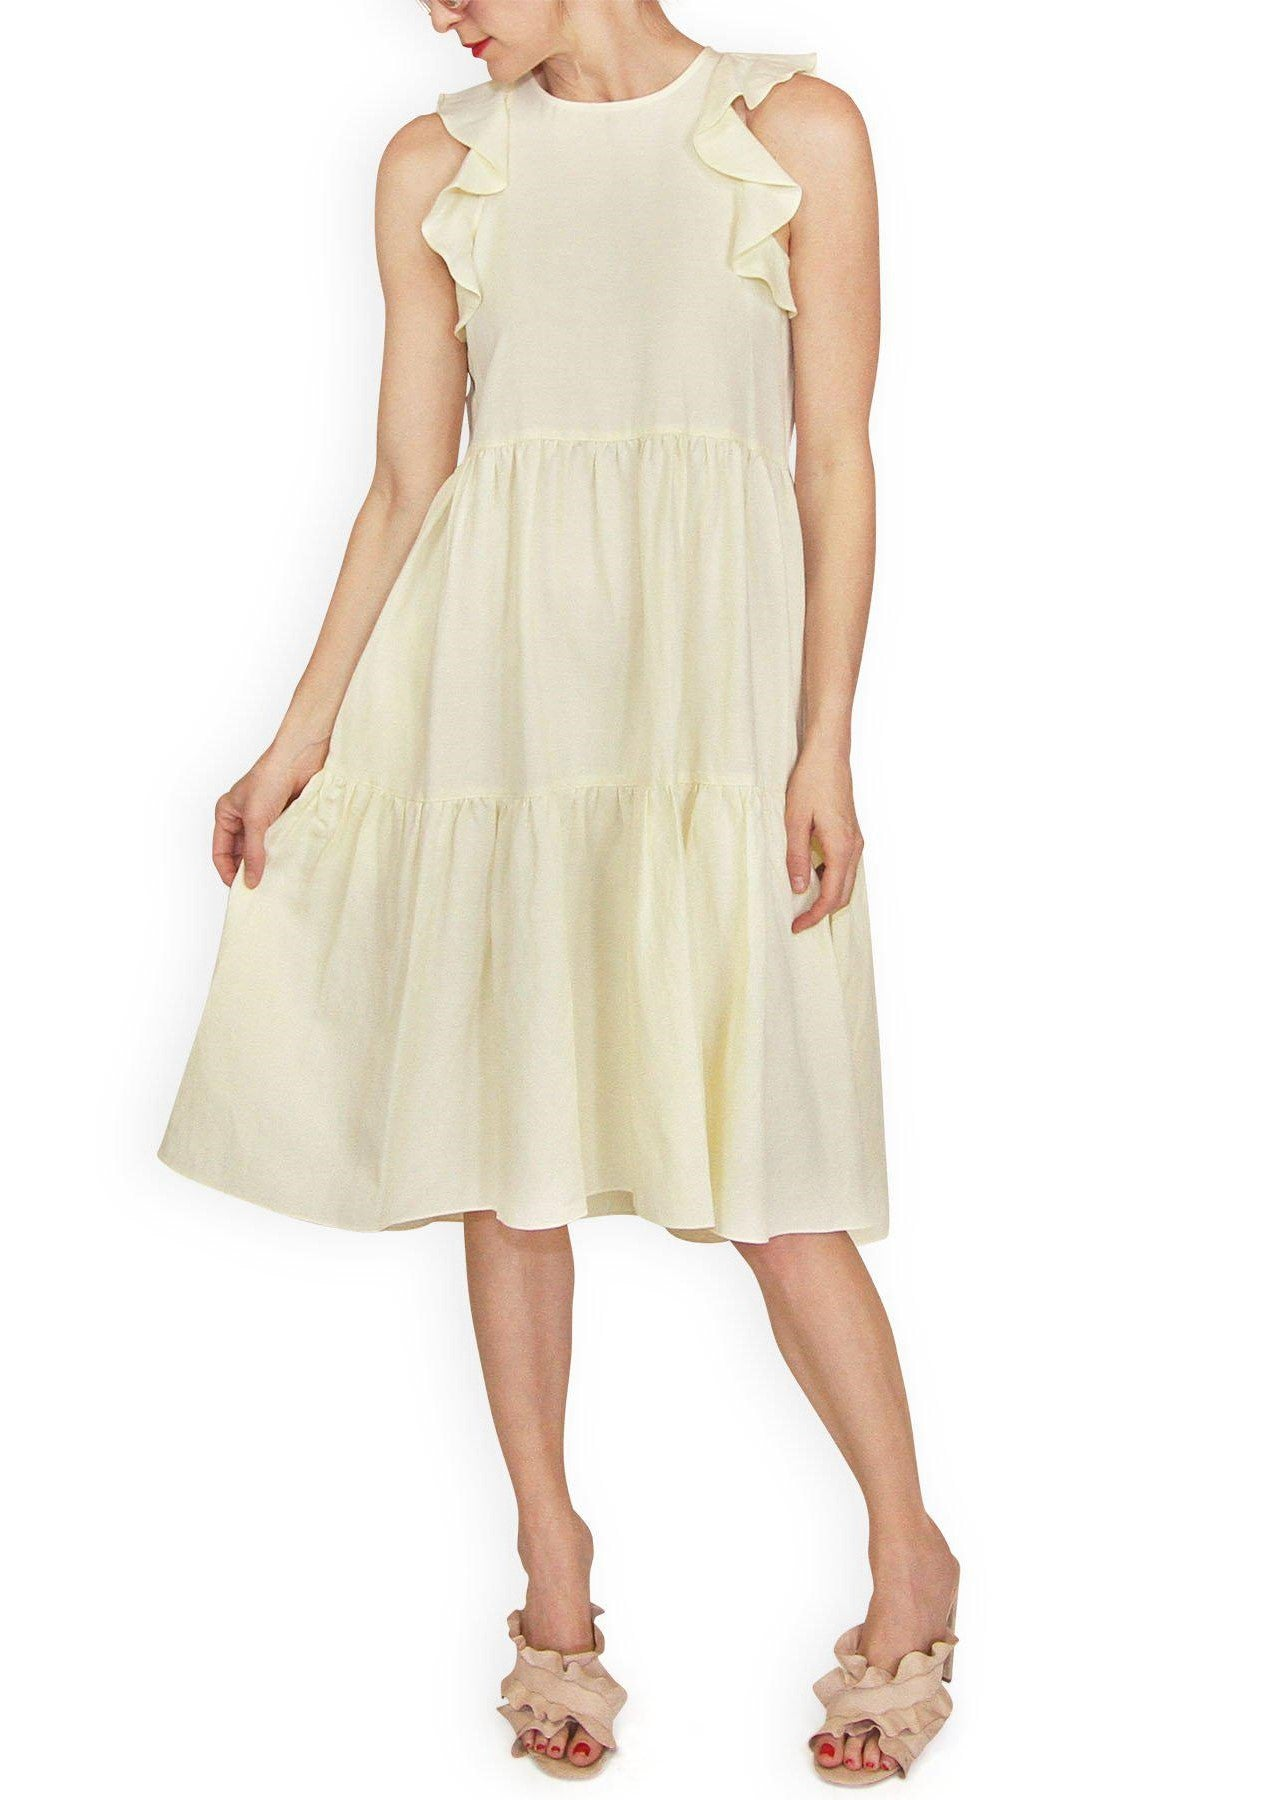 Ulla Johnson Sienna dress in lemon